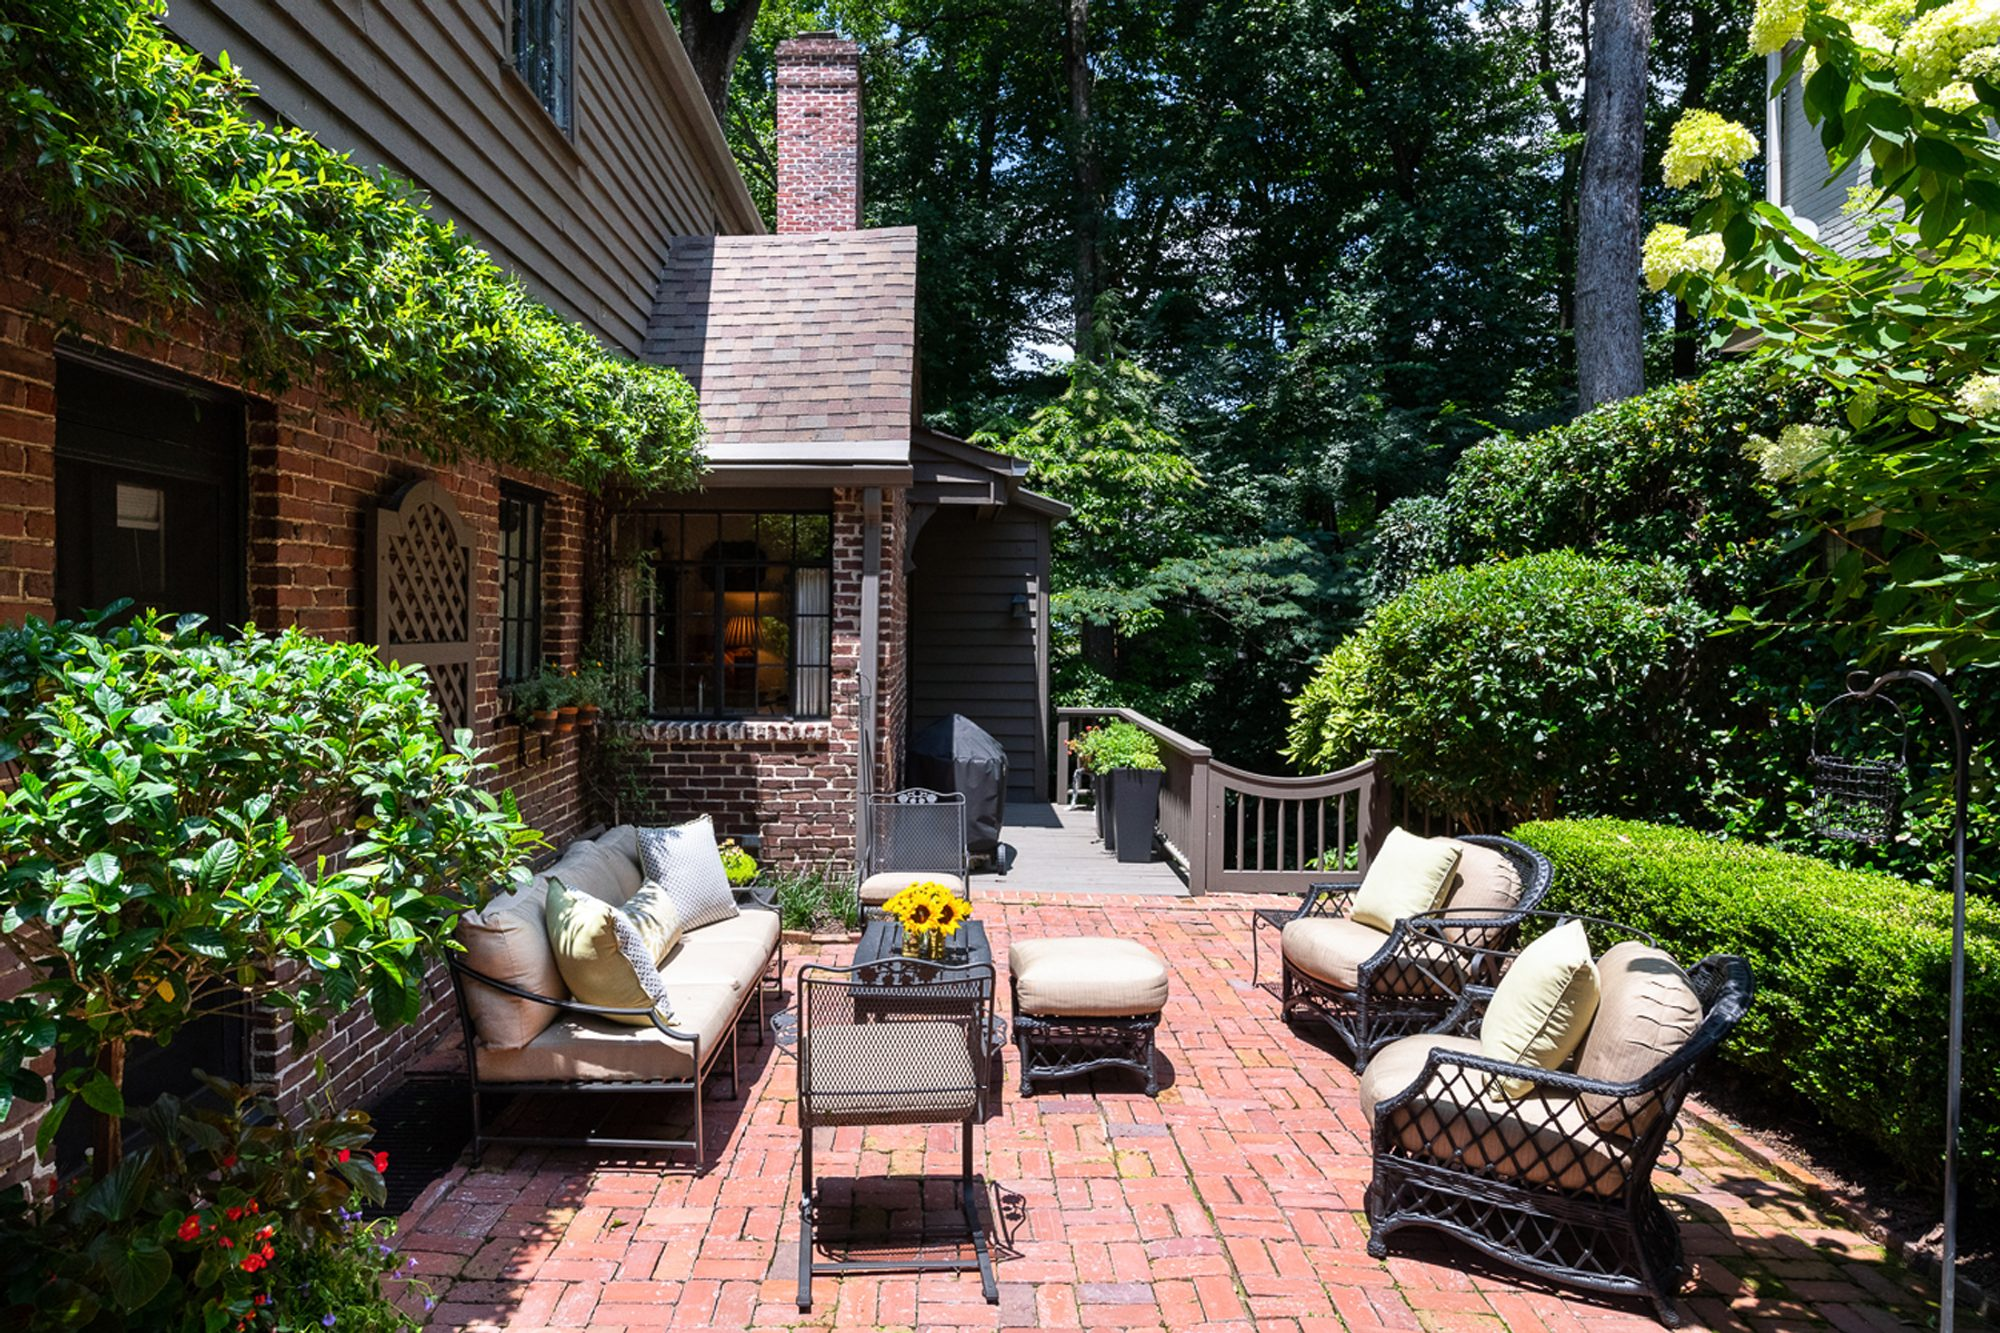 Red Brick Patio Ideas | DIY Paver Designs & Pictues on Red Paver Patio Ideas id=56823